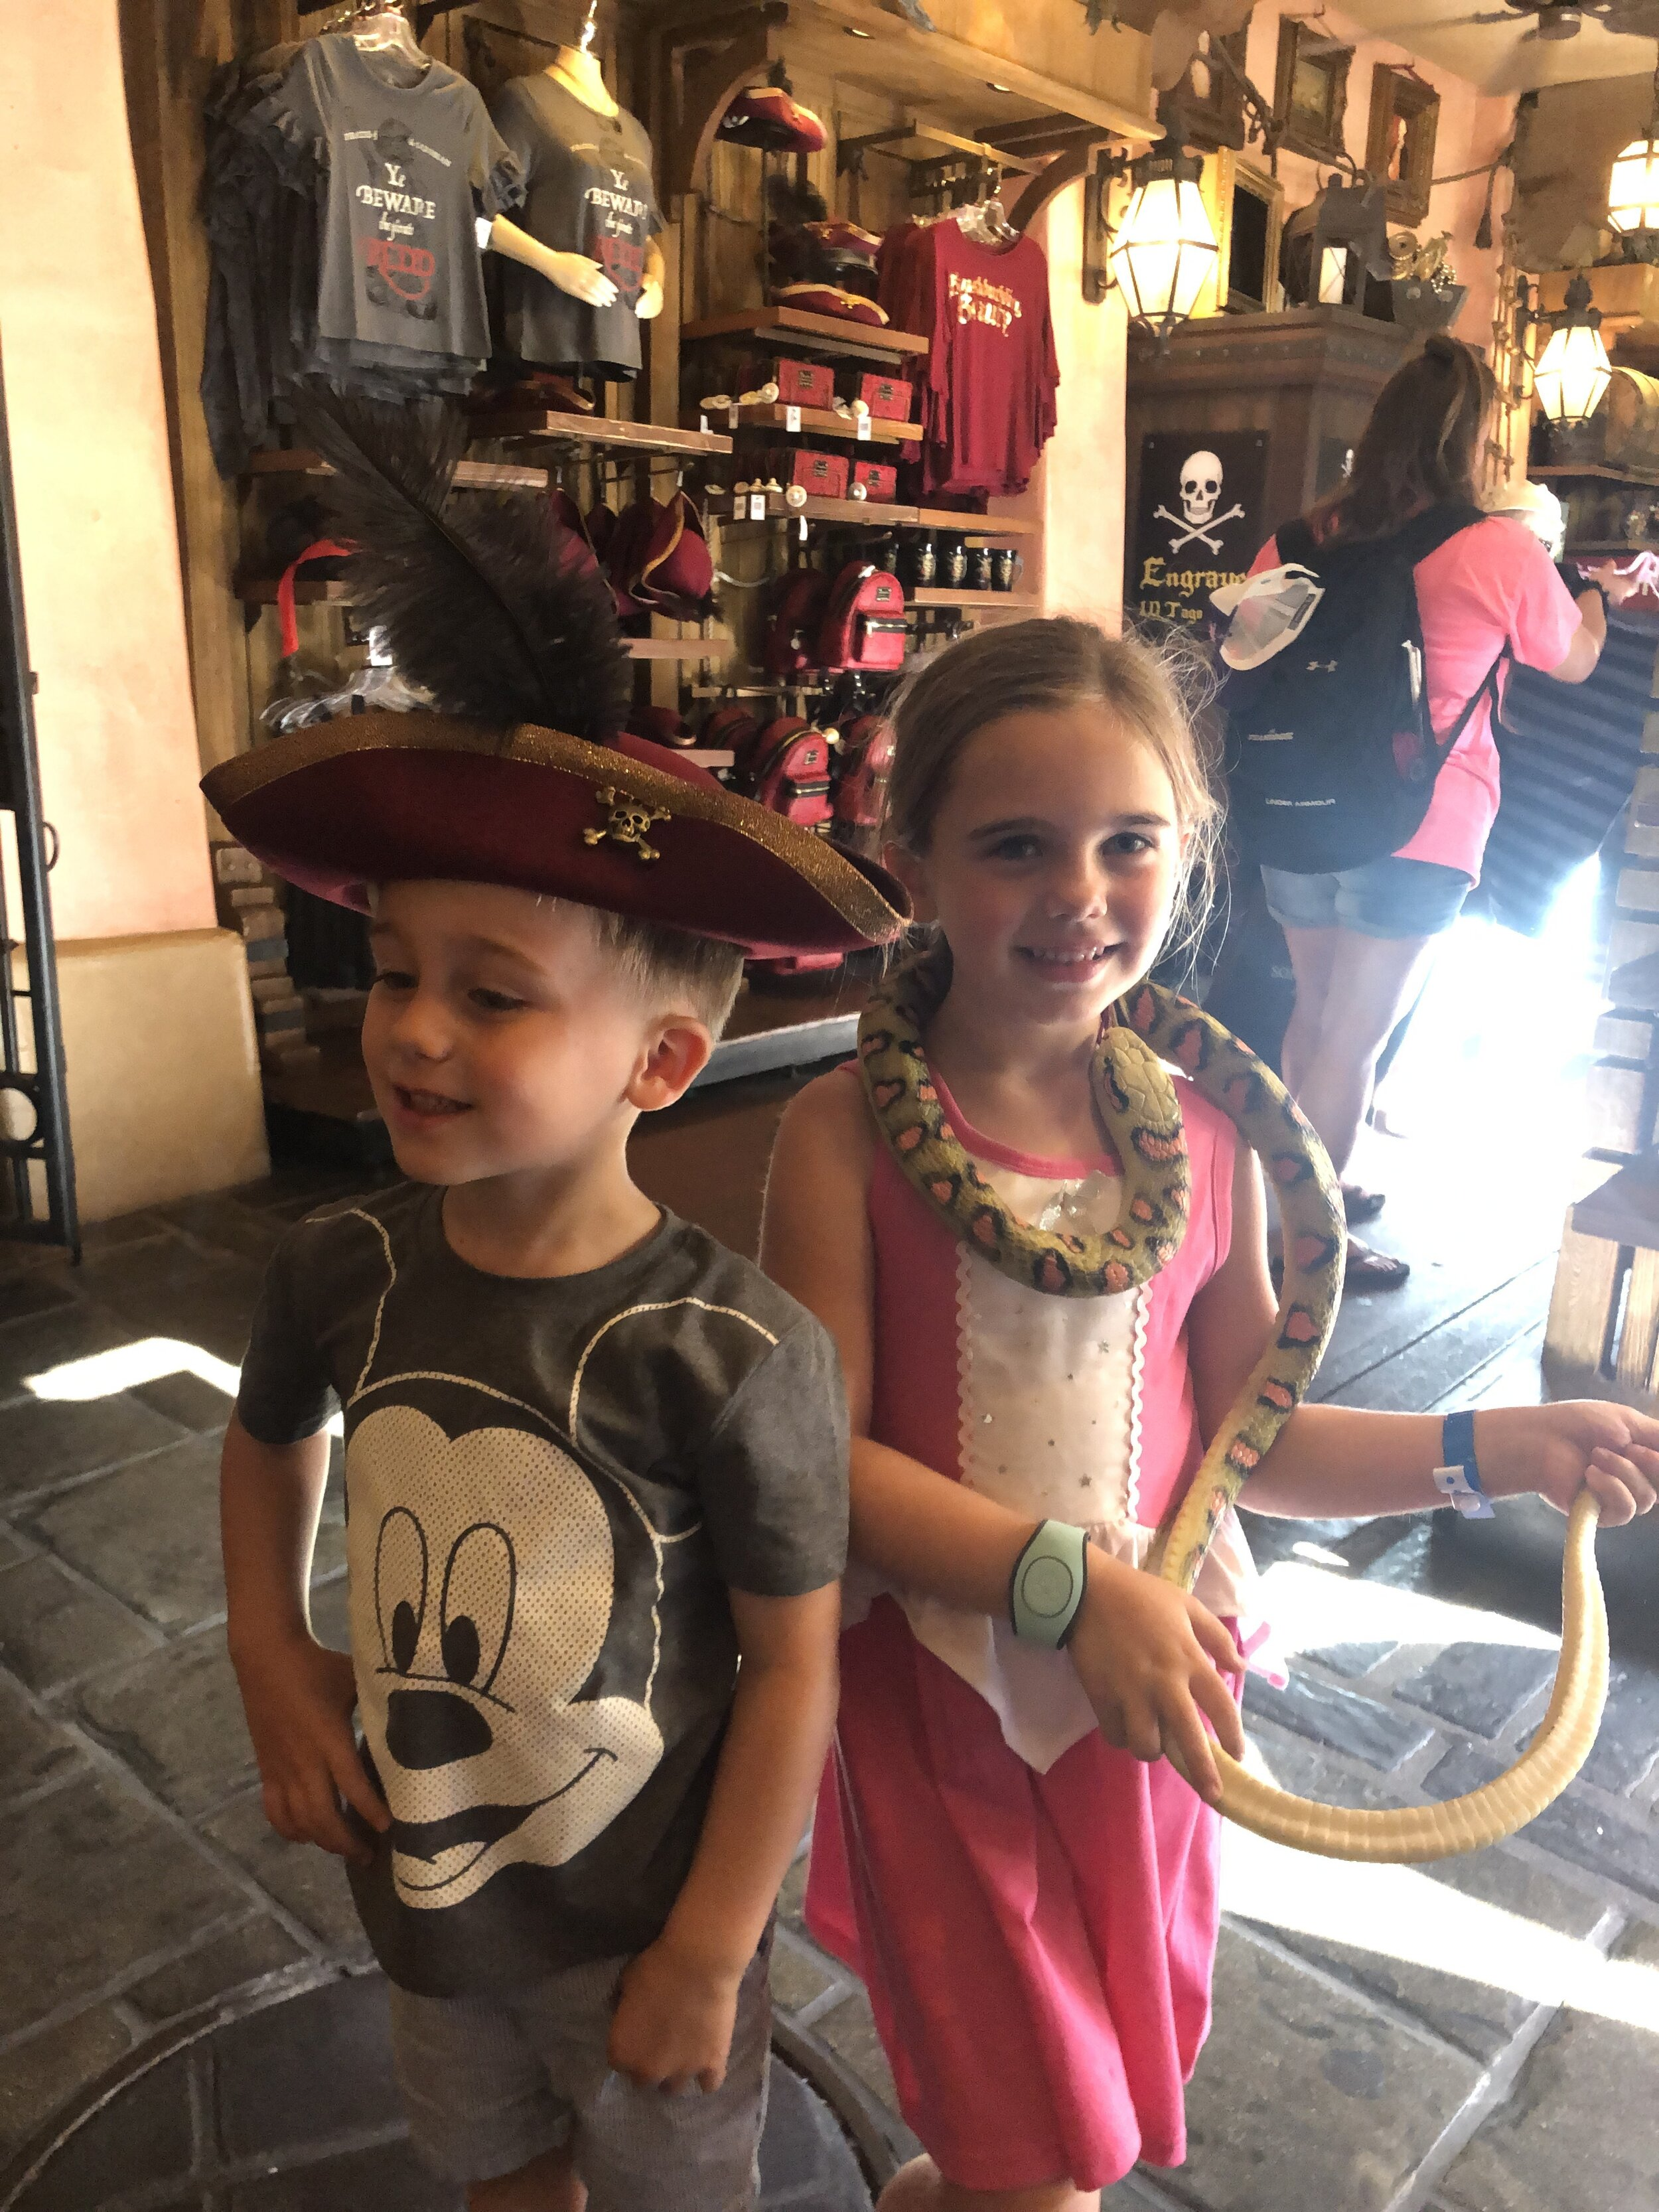 Little kids trying on pirate hats and playing with rubber snakes at the Pirates of the Caribbean shop in Magic Kingdom.